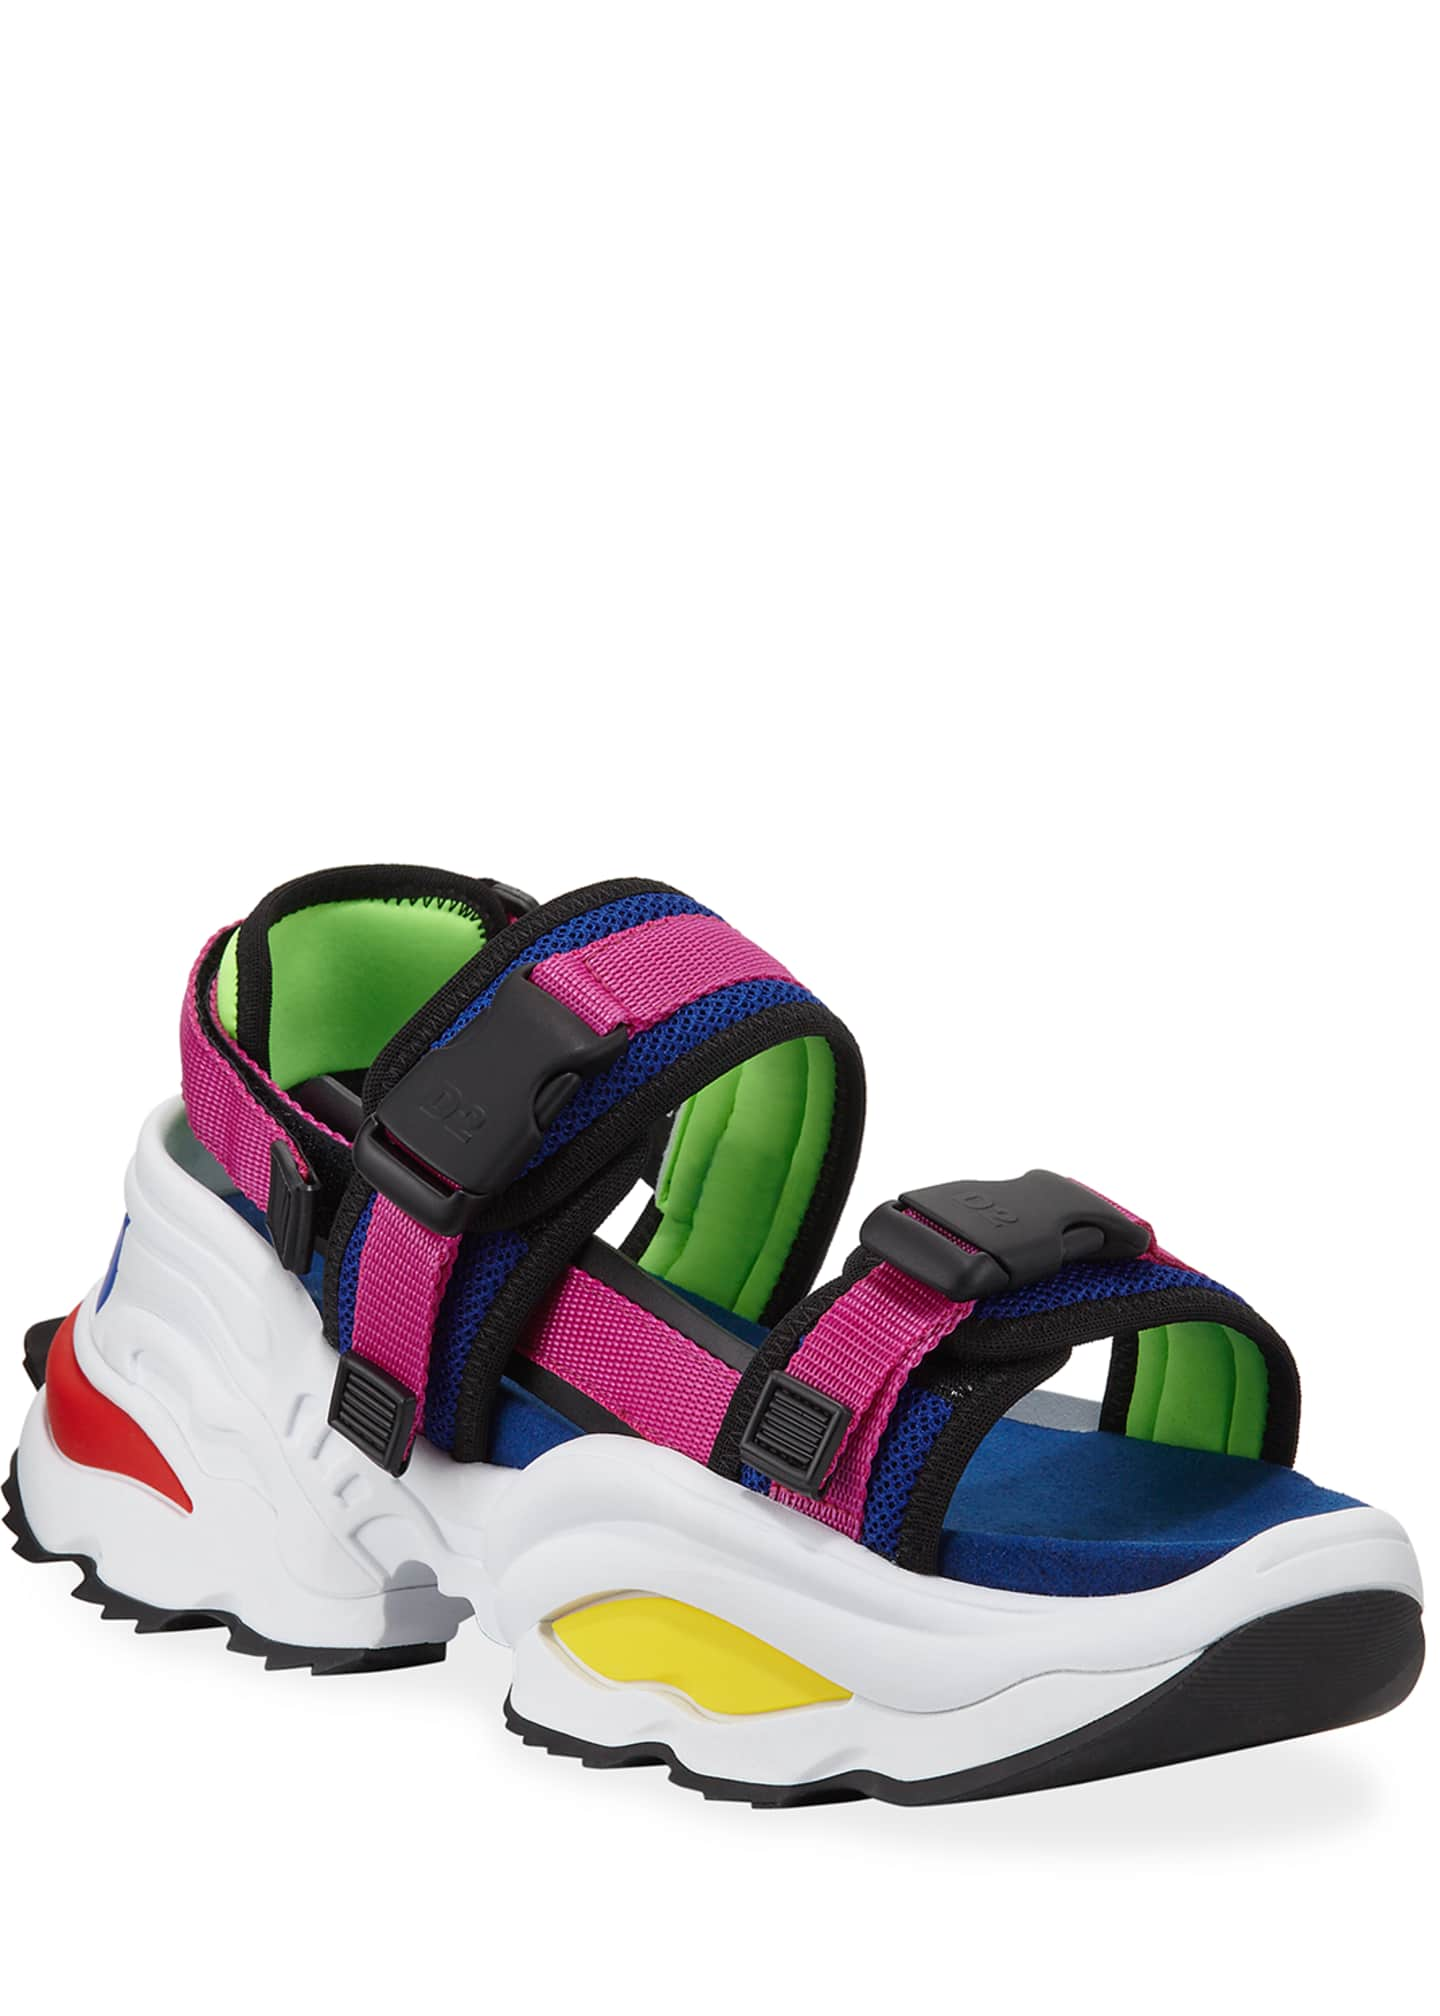 Dsquared2 Men's Chunky Colorblock Platform Sandals